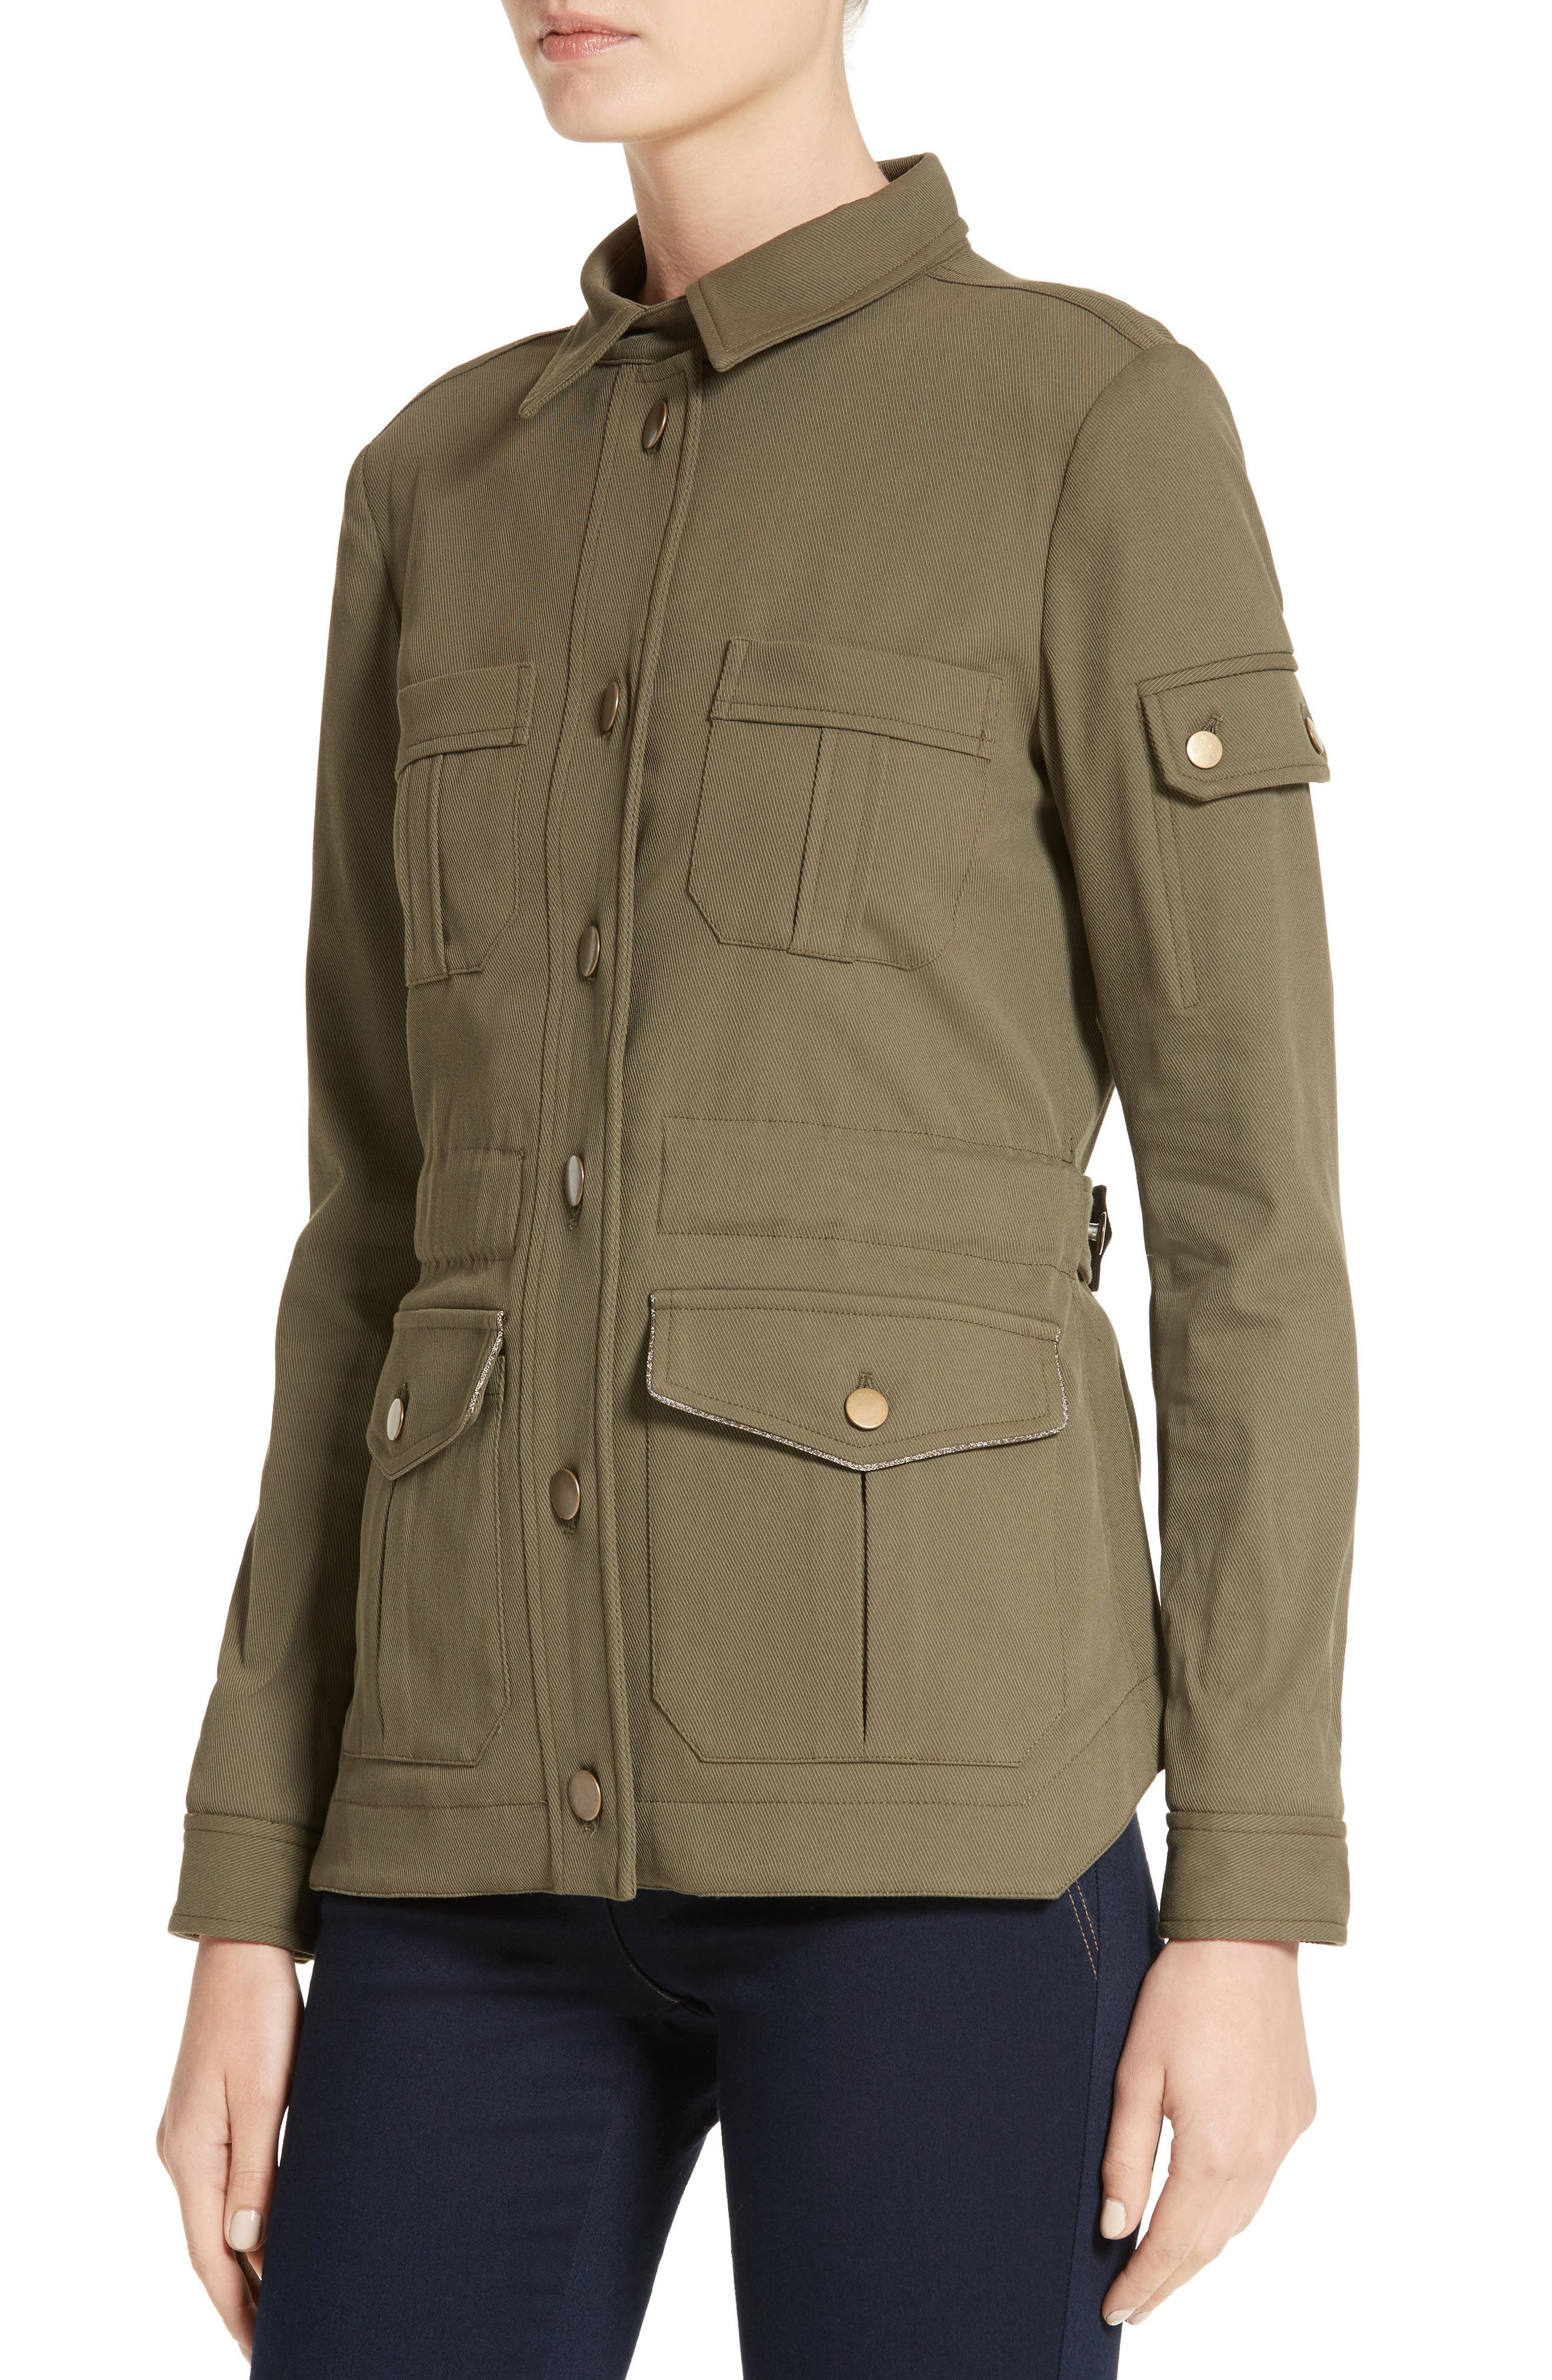 Camp Jacket,                             Alternate thumbnail 6, color,                             Army Green